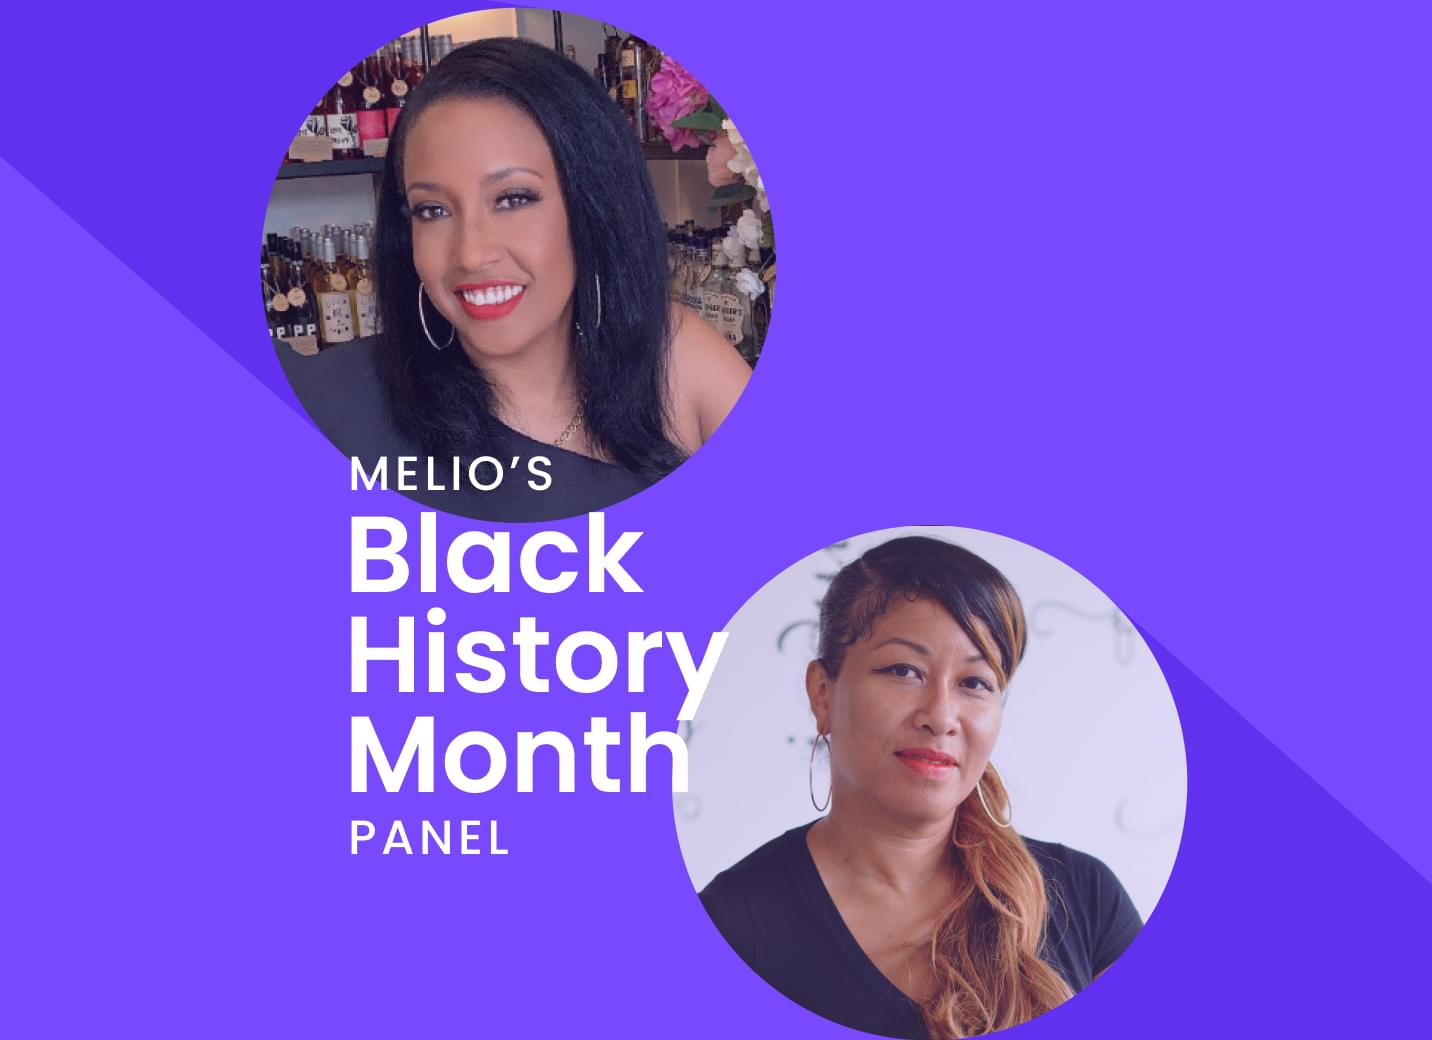 Black History Month panel highlights the resilience of Black women business owners